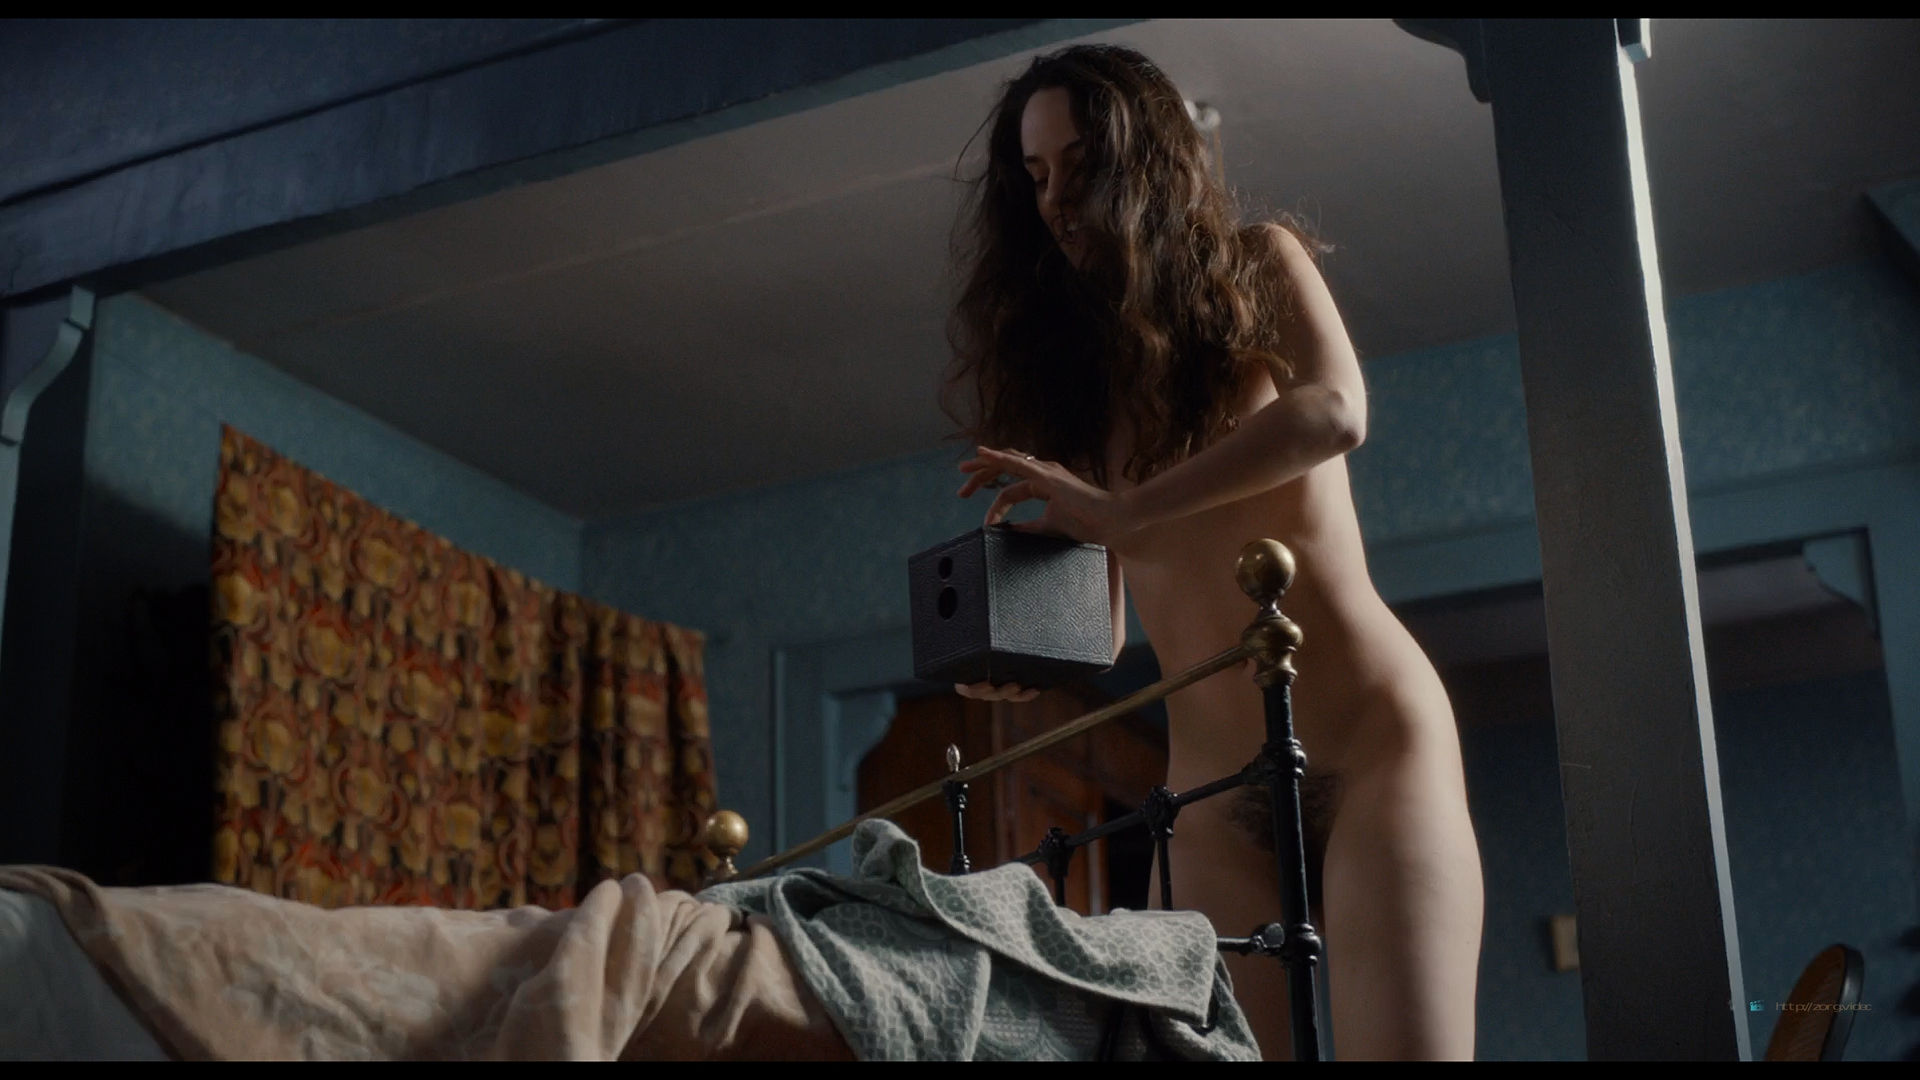 Noemie Merlant nude full frontal Camelia Jordana, Amira Casar and others nude - Curiosa (2019) HD 1080p Web (6)